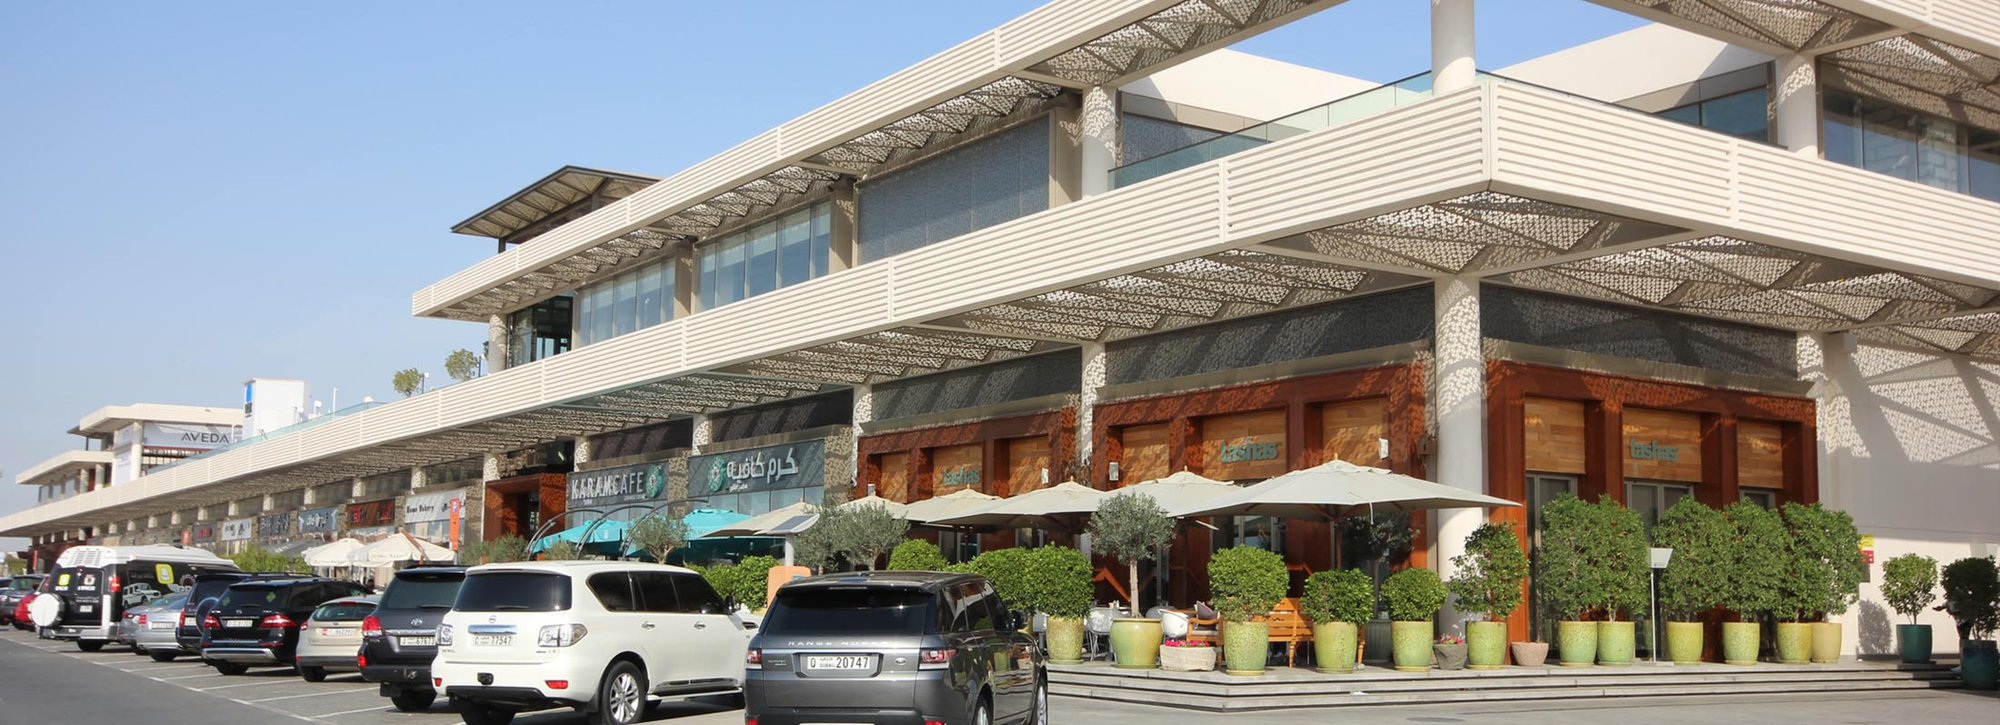 Tired of Shopping? The Galleria Mall Dubai Has More Things to Offer